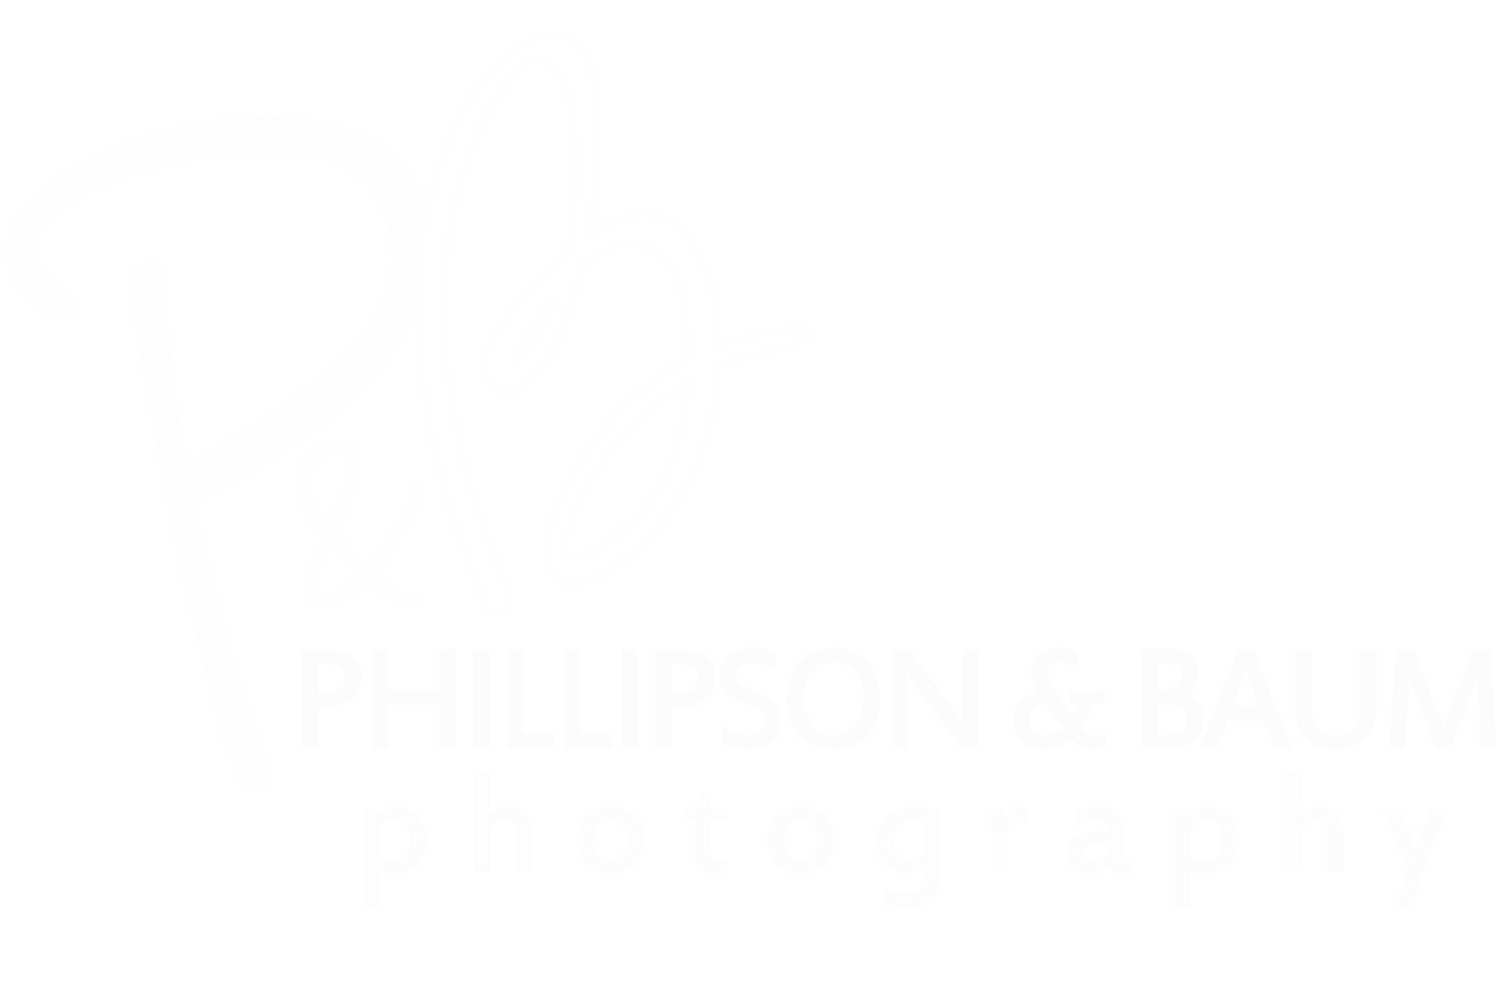 Phillipson & Baum Photography